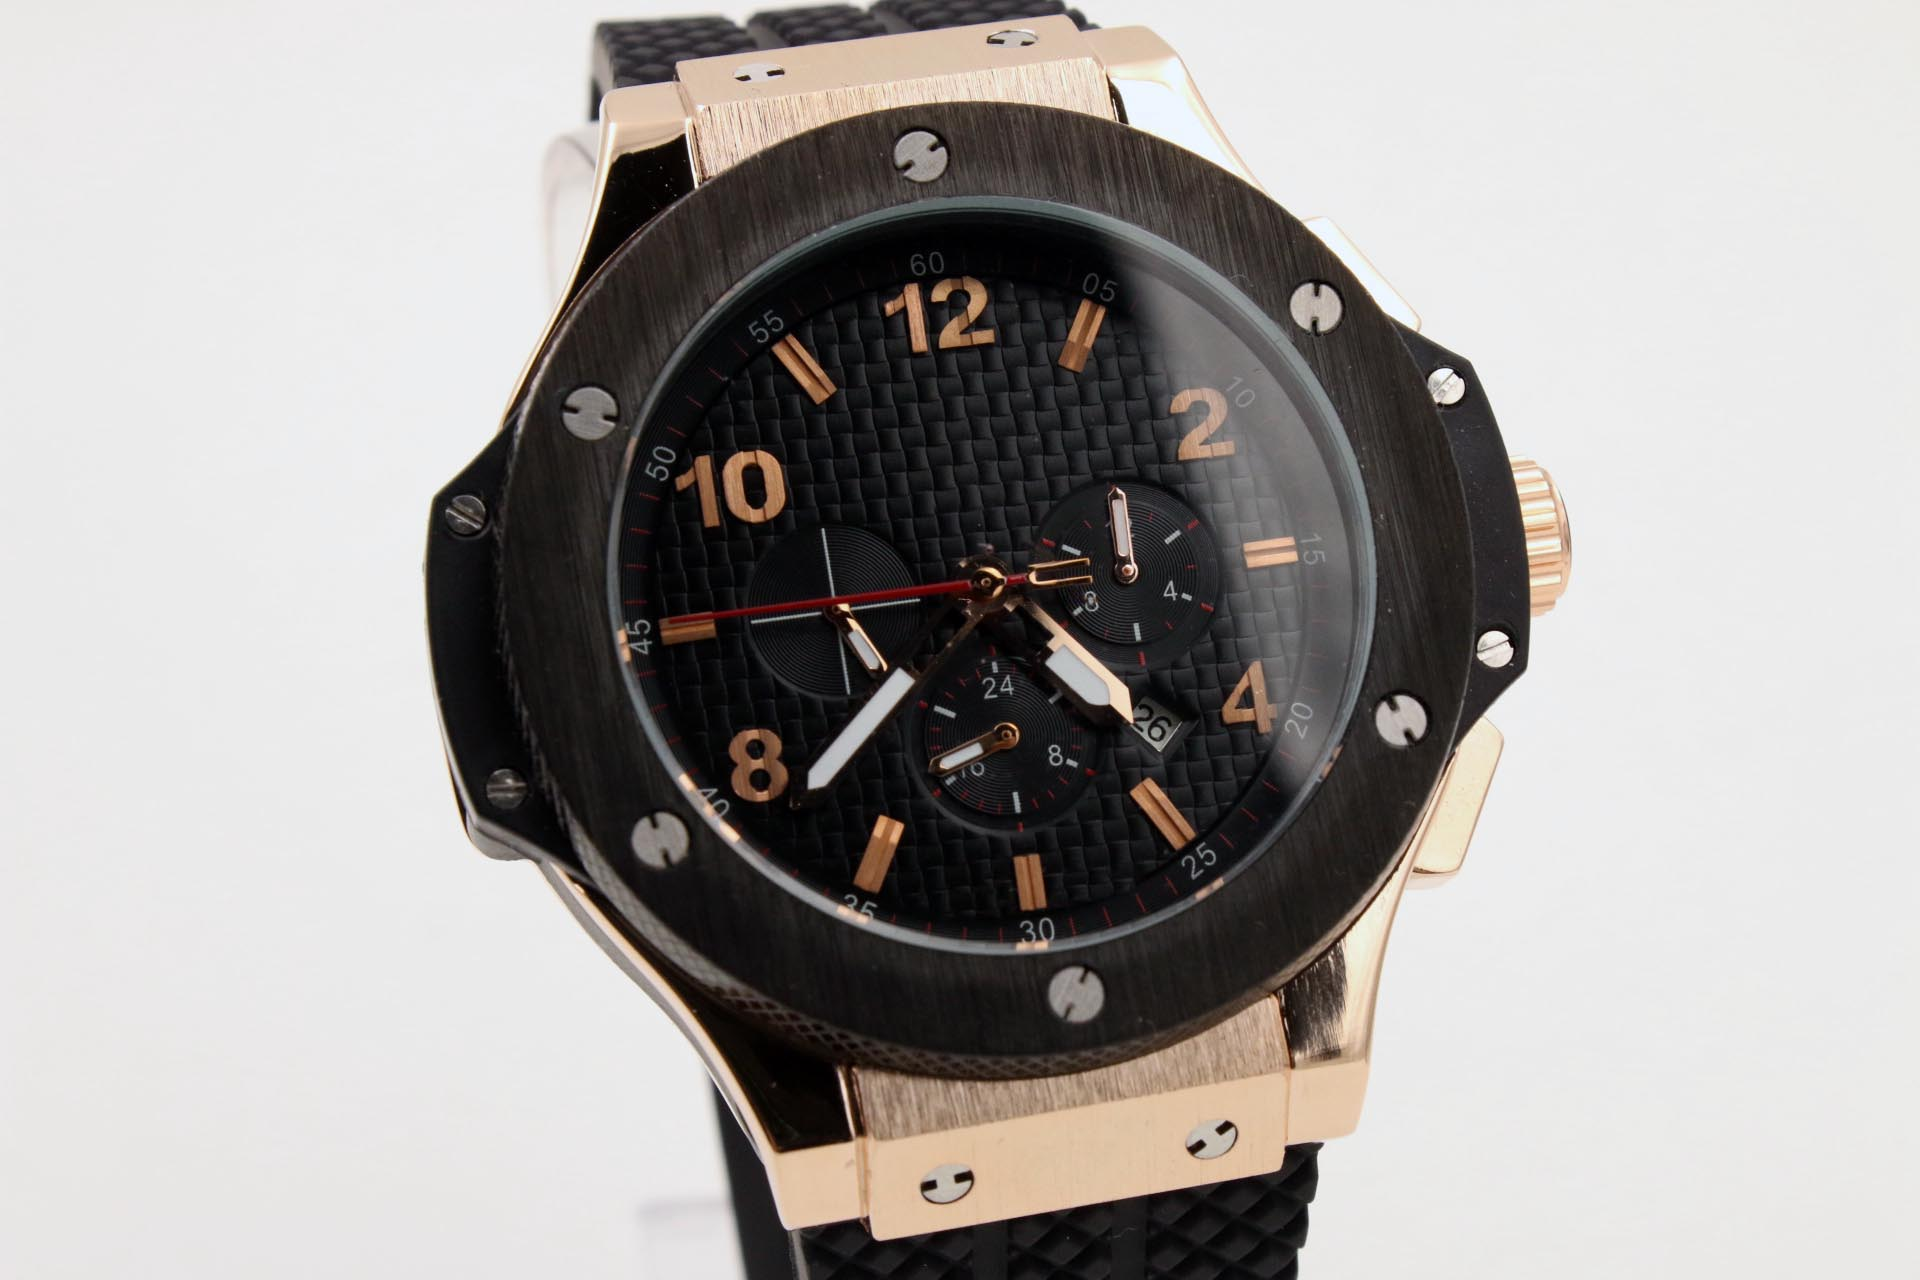 Classic mens watch Big 44mm Transparent back Black plaid dial Original buckle buckle Aaaa Rubber Rose Gold Case WristwatchClassic mens watch Big 44mm Transparent back Black plaid dial Original buckle buckle Aaaa Rubber Rose Gold Case Wristwatch